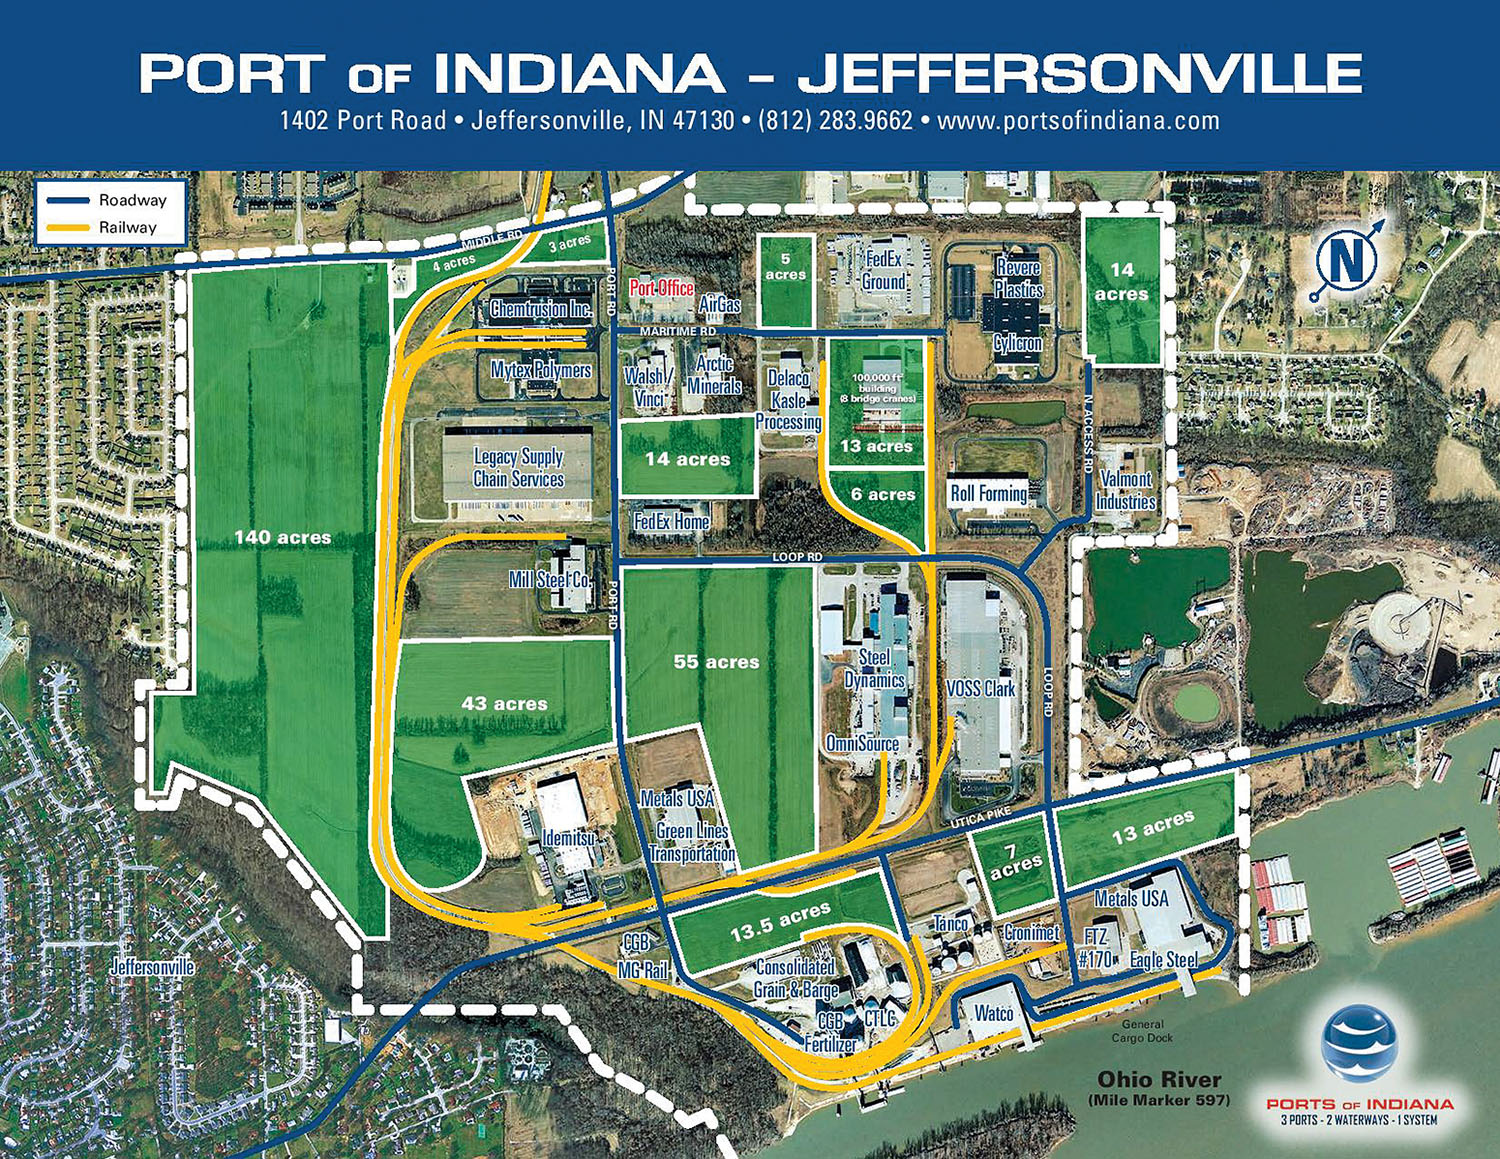 —courtesy of the Port of Indiana-Jeffersonville A map shows plans for the three-phase, $23 million infrastructure expansion expected to be completed at Port of Indiana-Jeffersonville by fall 2021. (Photo courtesy of the Port of Indiana-Jeffersonville)